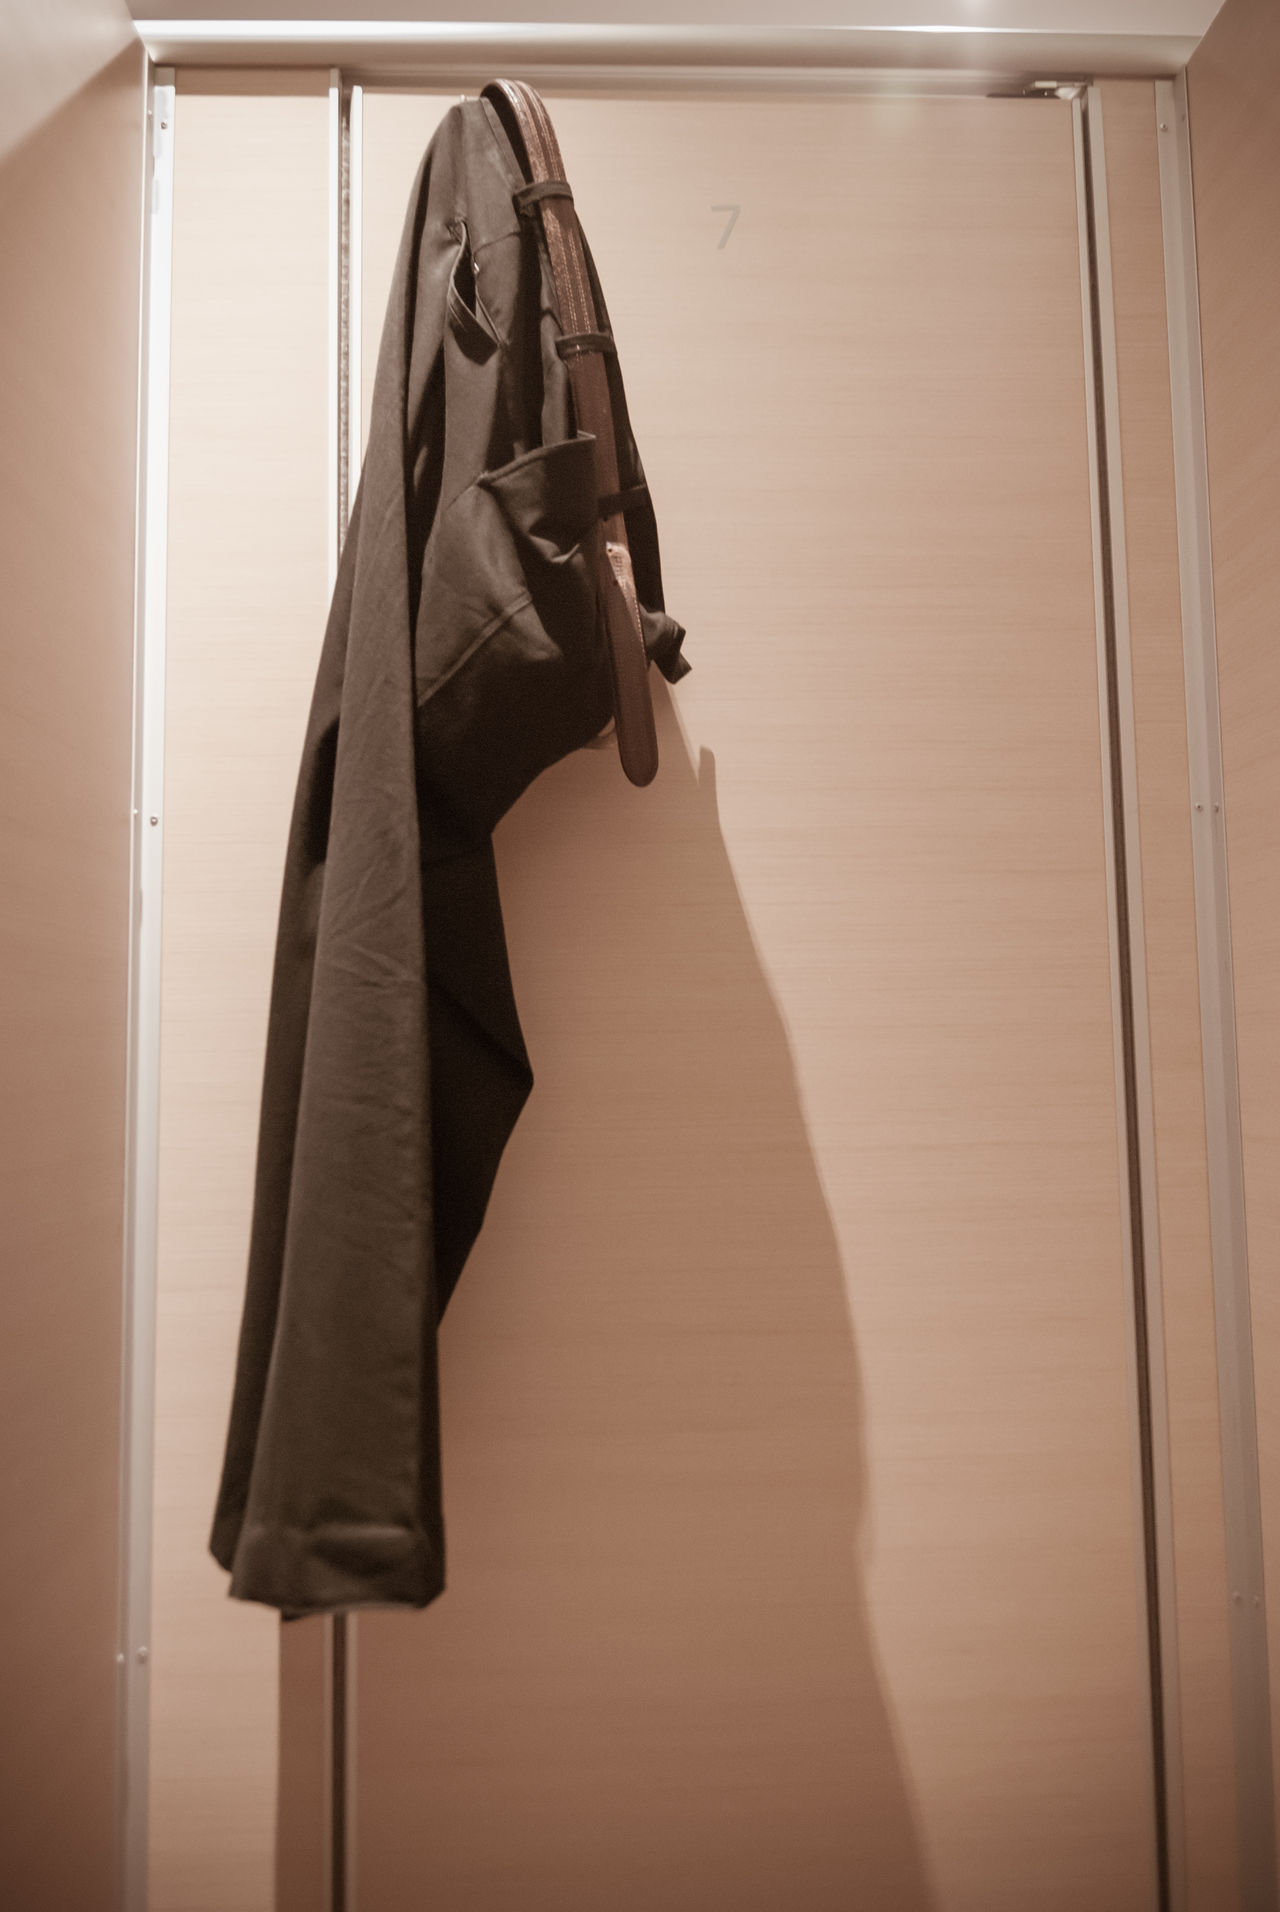 trouser hanging in In the toilet Adult Defecate Hang Hanging Trousers In Closet Indoors  Men's Toilets Personal Private Toilet Trousers